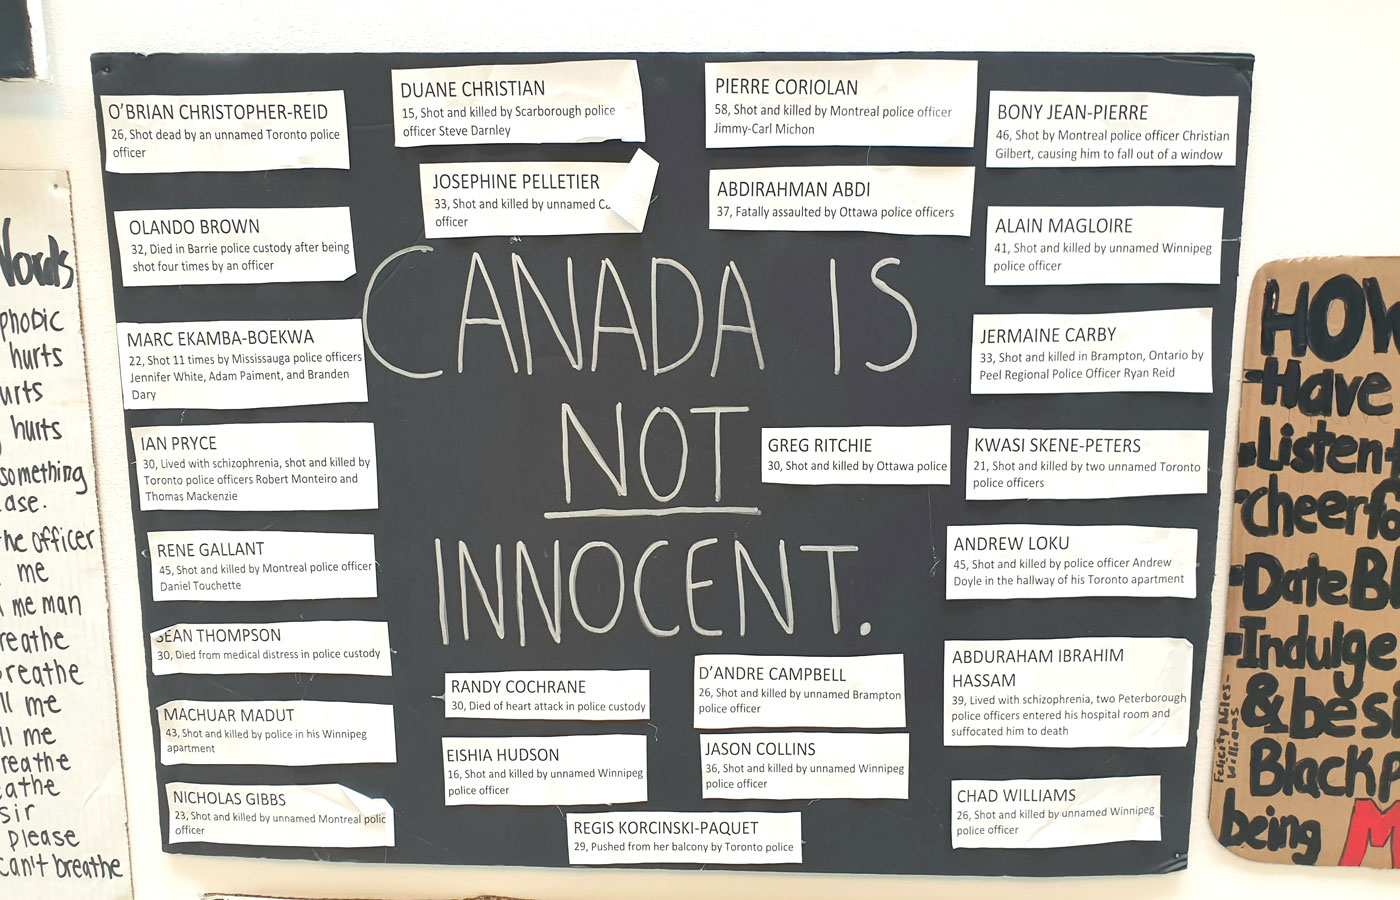 "A sign that says ""Canada is Not Innocent."" The sign is in Museum London in London, Ontario.Names on there include O'Brian Christopher-Reid, Duane Christian, Pierre Coriolan, Bony Jean-Pierre, Olando Brown, Josephine Pelletier, Abirahman Abdi, Alain Magloire, Marc Ekamba-Boekwa, Jermaine Craby, Ian Pryce, Greg Ritchie, Kwasi Skene-Peters, Rene Gallant, Andrew Loku Sean Thompson Marchuar Madut Nicholas Gibbs, Randy Cochrane, D'andre Campbell, Abduraham Ibrahim Hassam, Eishia Hudson, Jason Collins, Nicholas Gibbs, Chad Williams, and Regis Korchinski-Paquet, along with how they died."